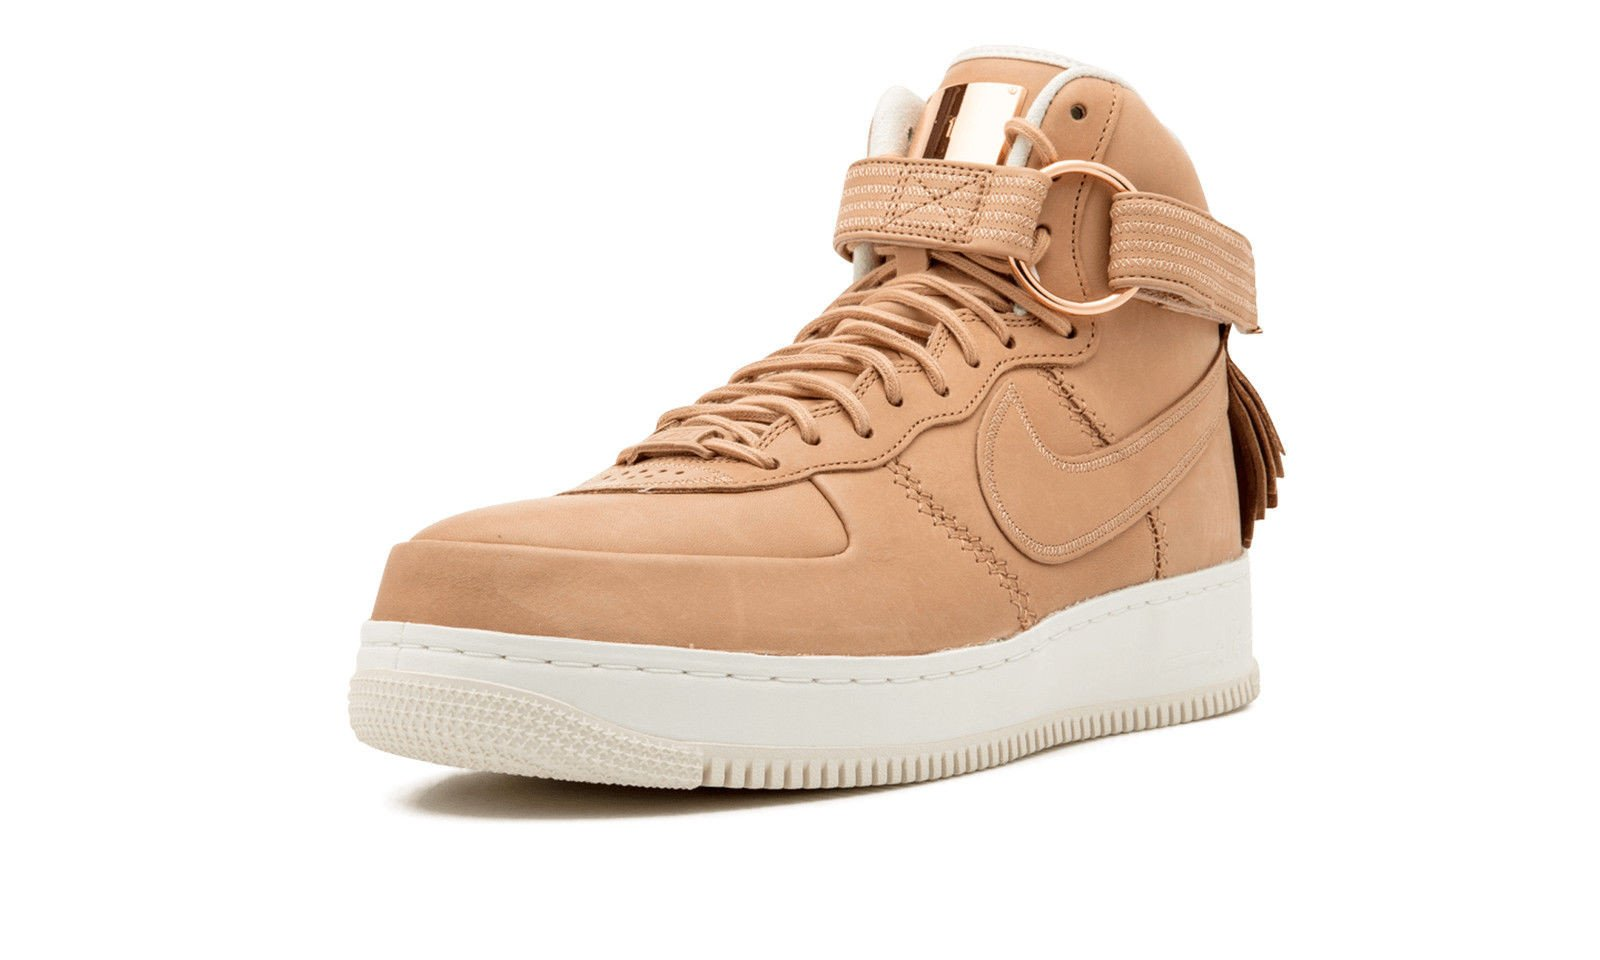 separation shoes cc03b bfce1 ... Men s Nike Air Force 1 High SL All Star 5 Decades Of Basketball 919473  200 ...